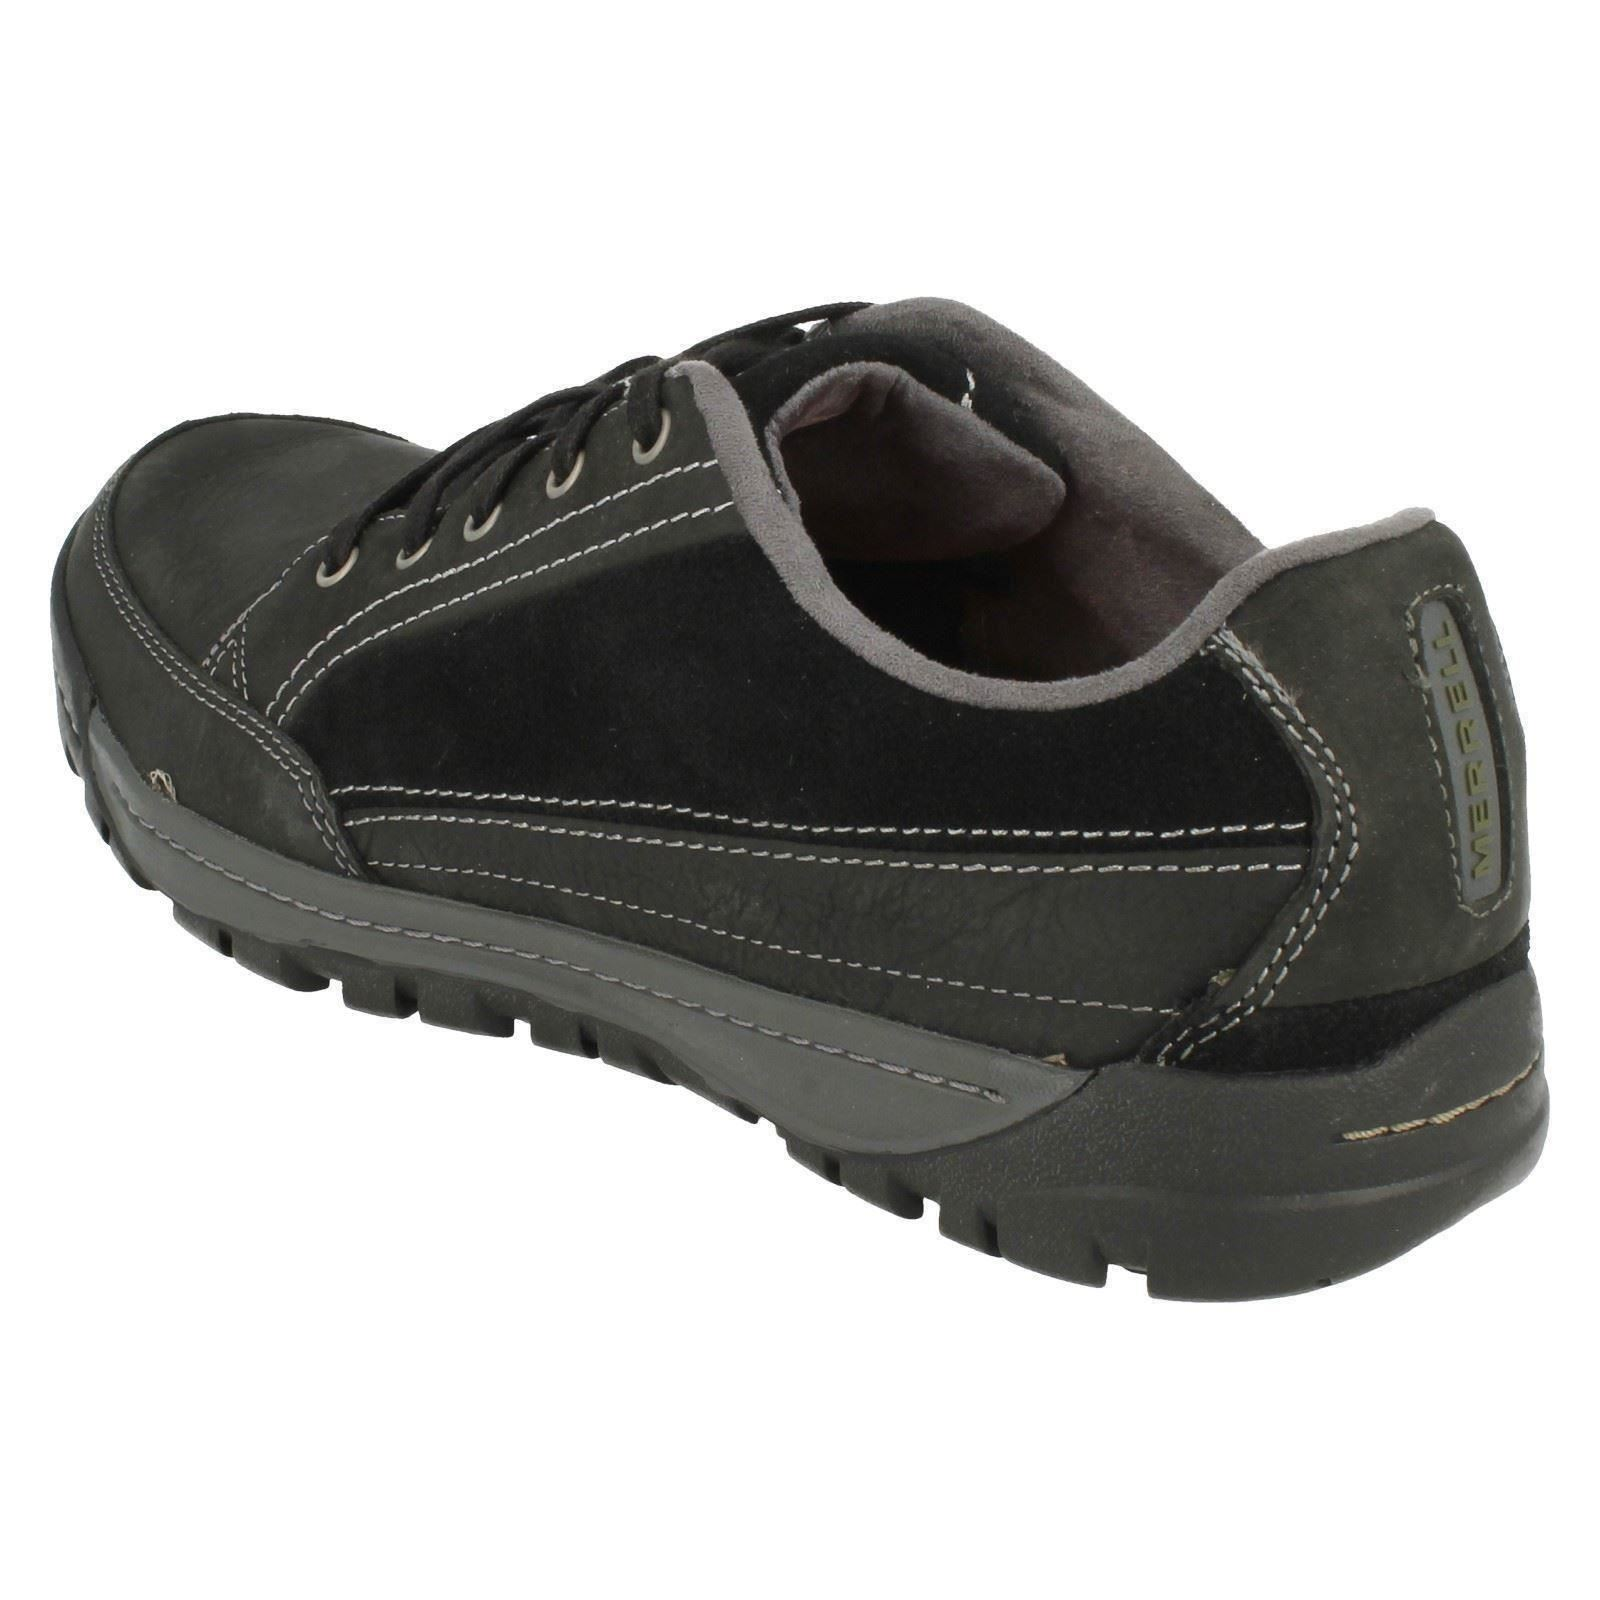 Merrell Traveler Sportive Scarpe Casual Sphere Uomo 4gqYdW4